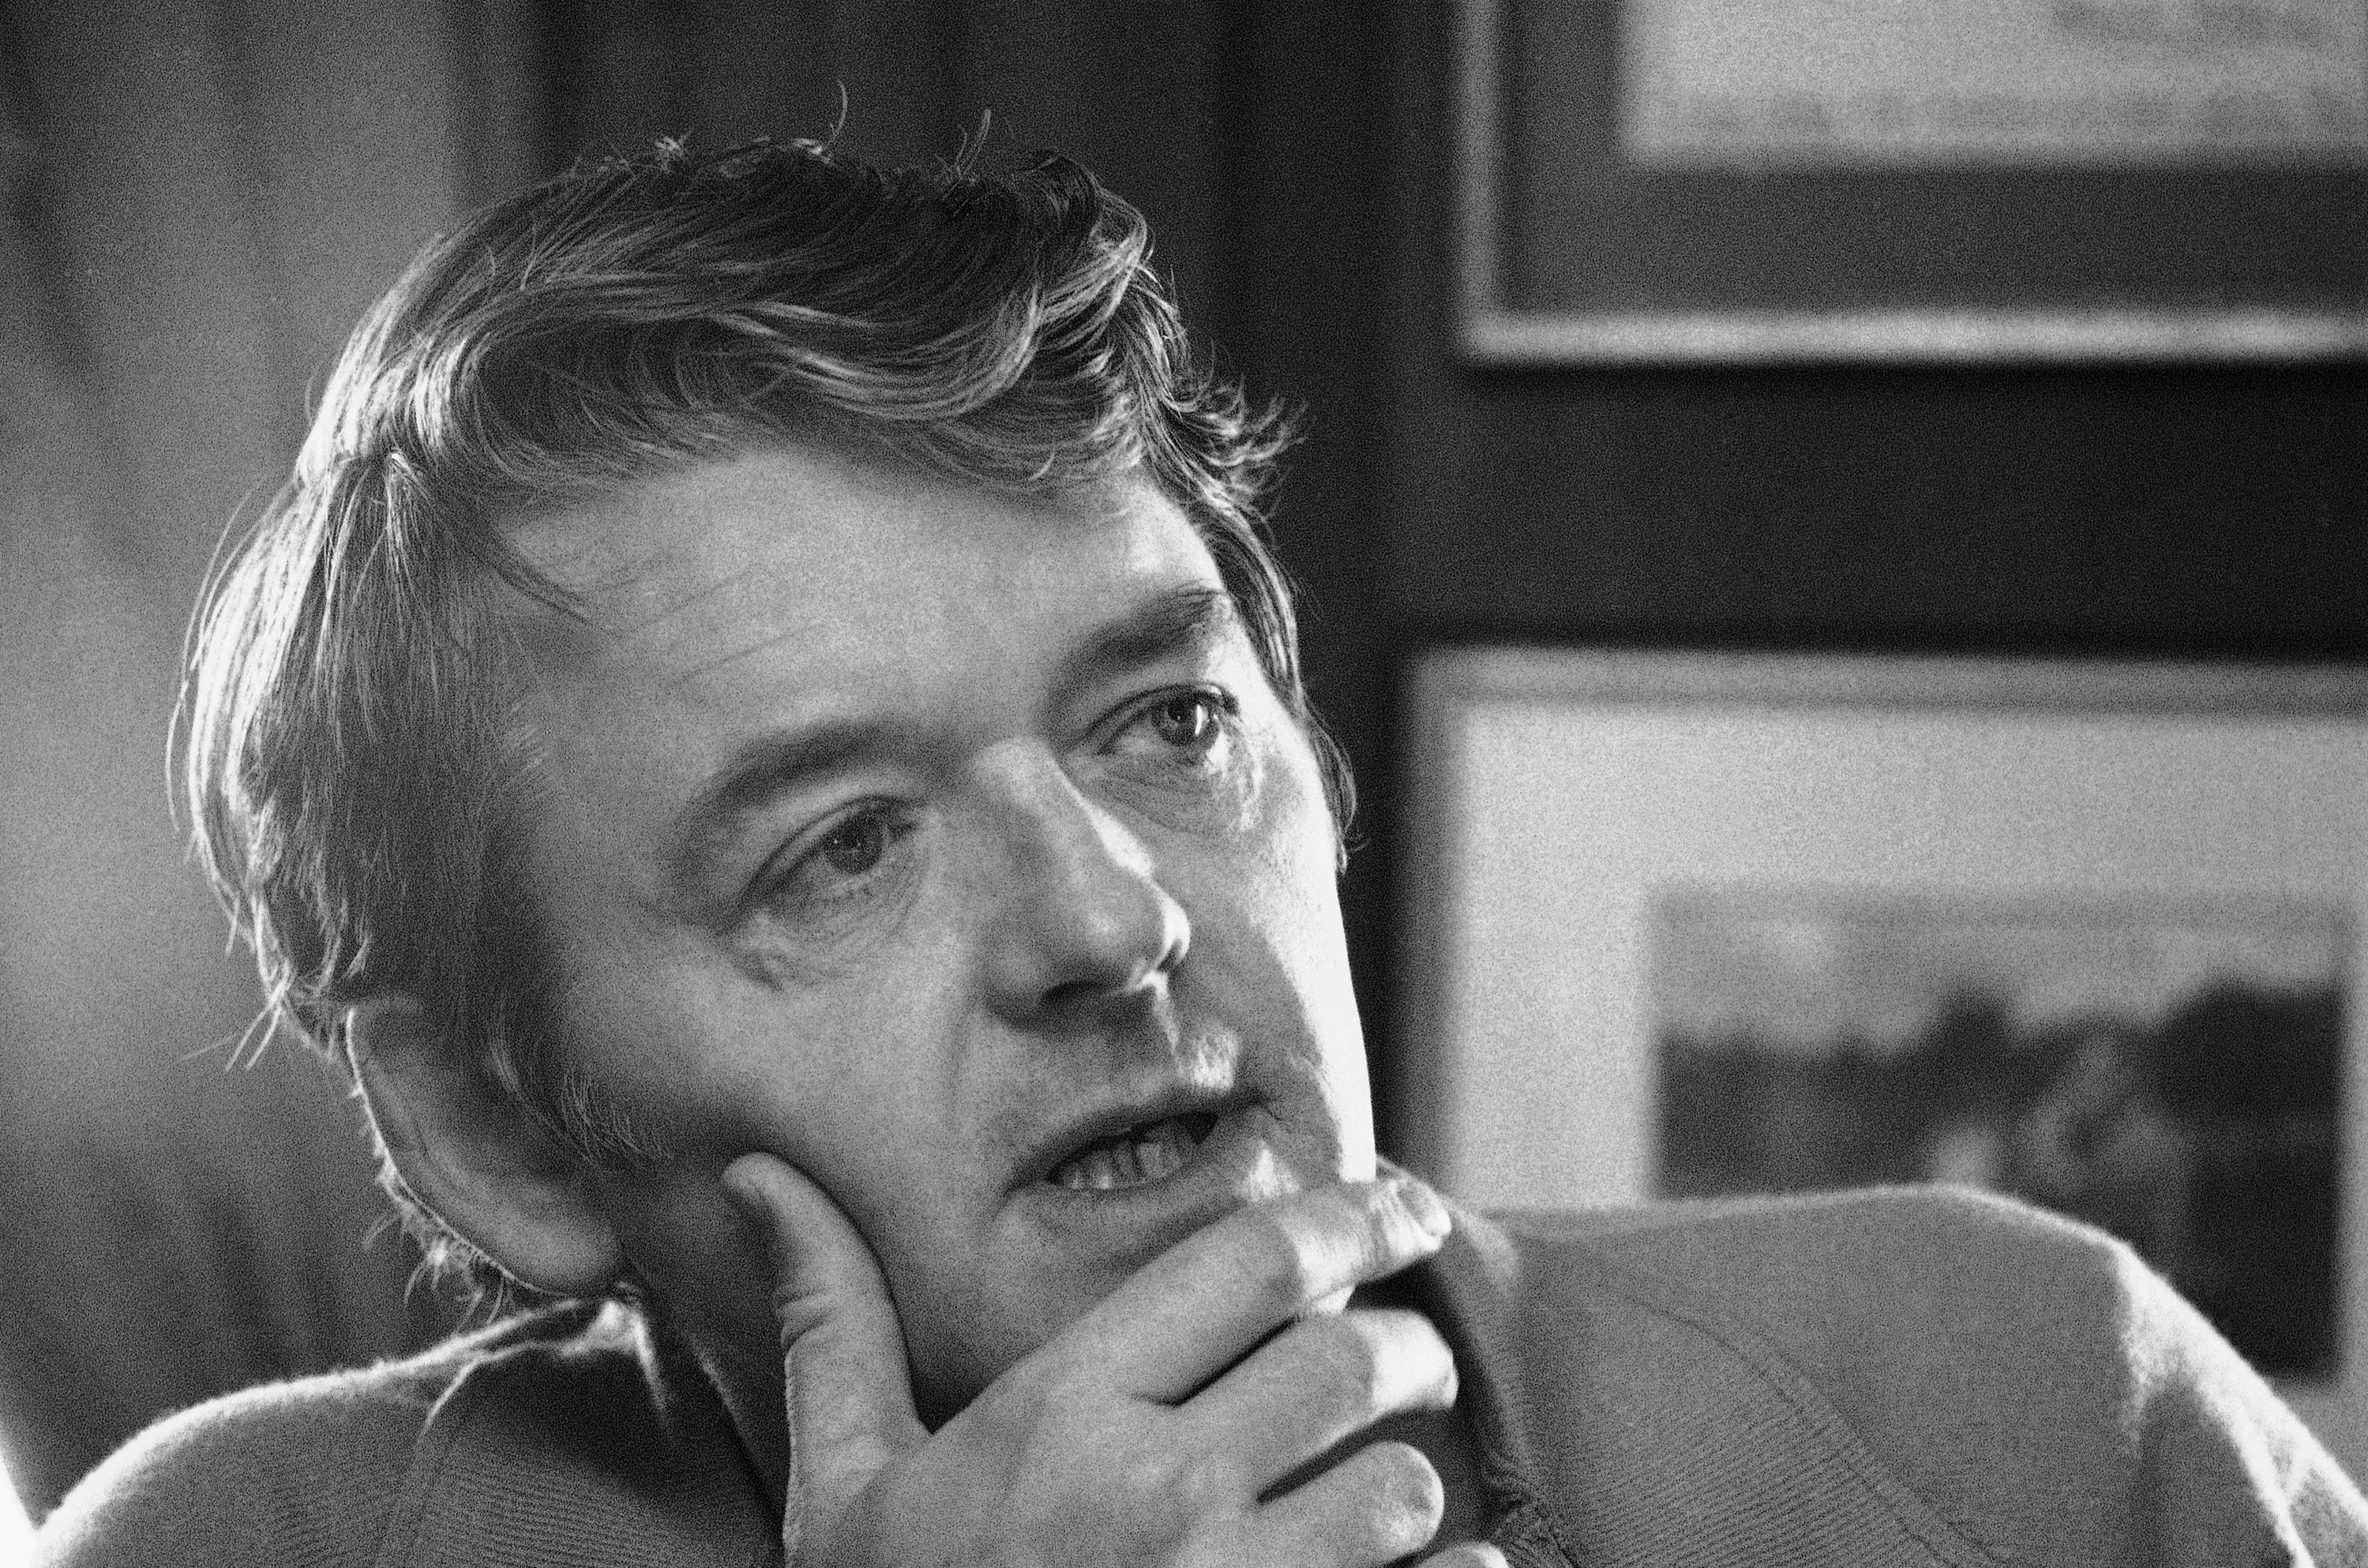 Actor Hal Holbrook appears during an interview in his New York apartment on Feb. 8, 1973.